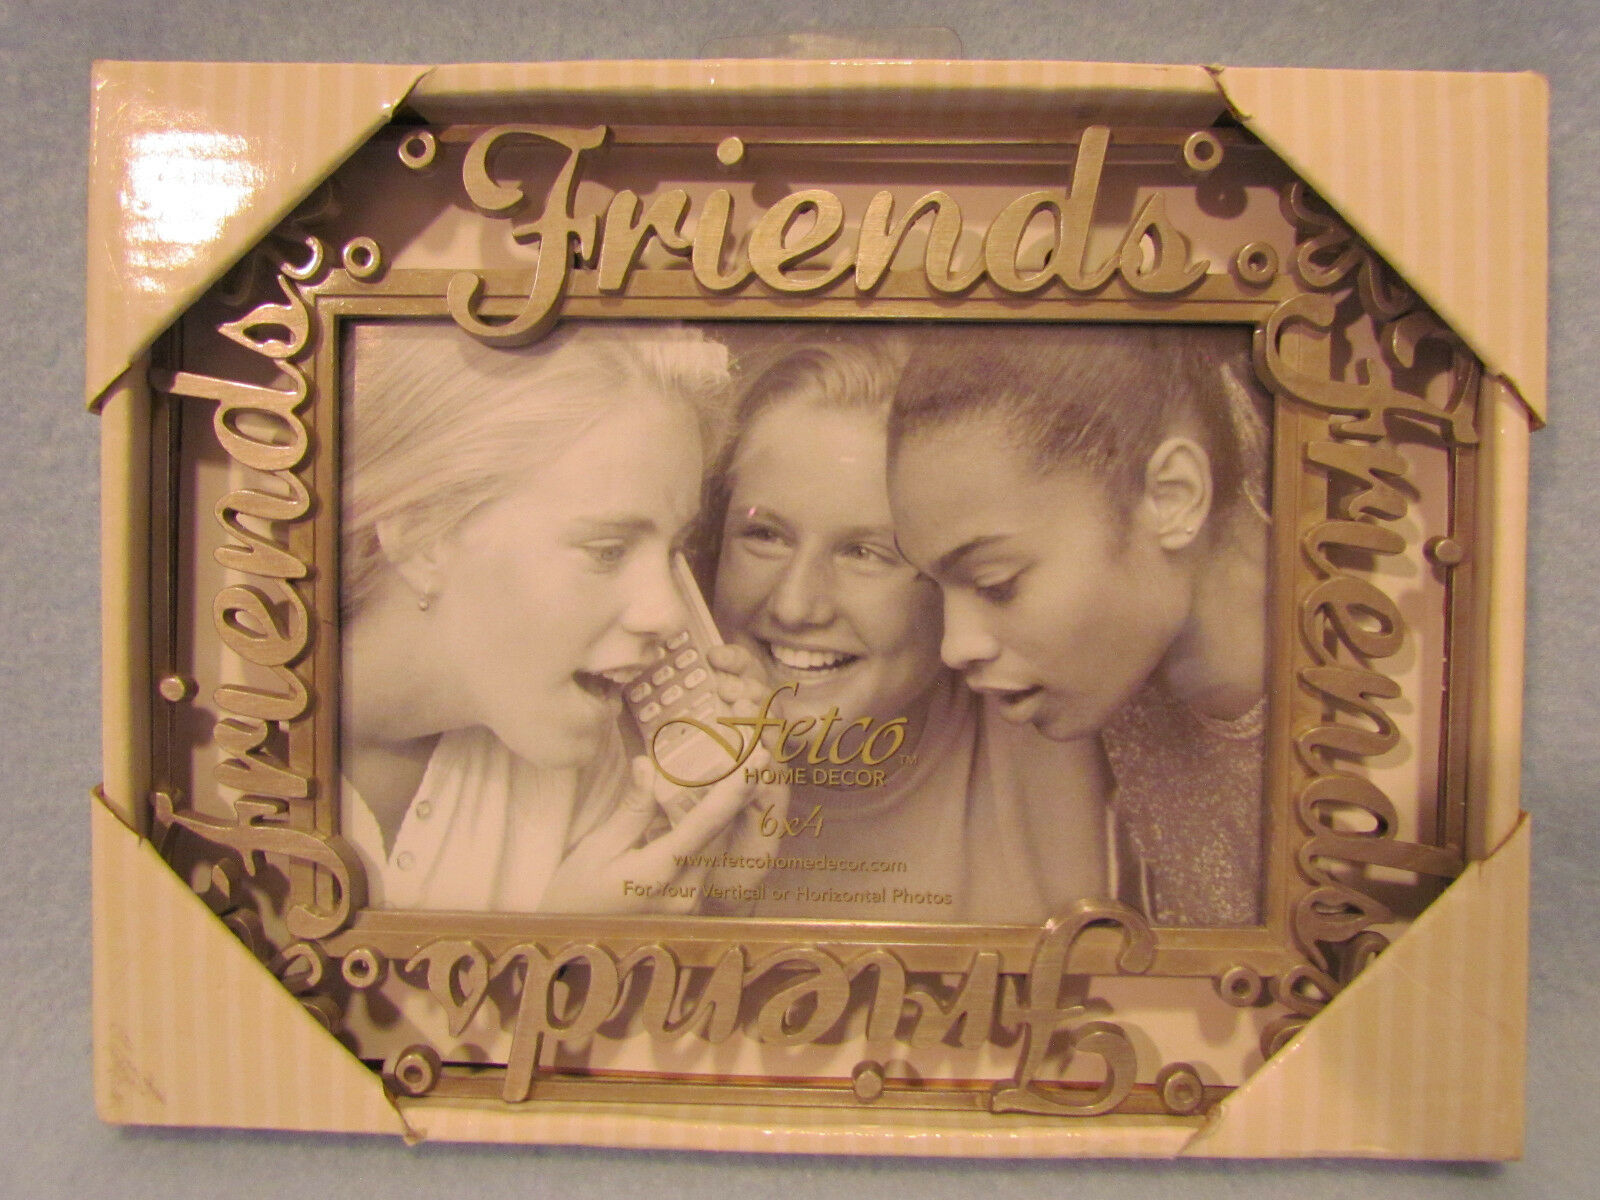 Fetco home decor friends metal pewter 4x6 picture photo frame brand new lowest price jeuxipadfo Gallery